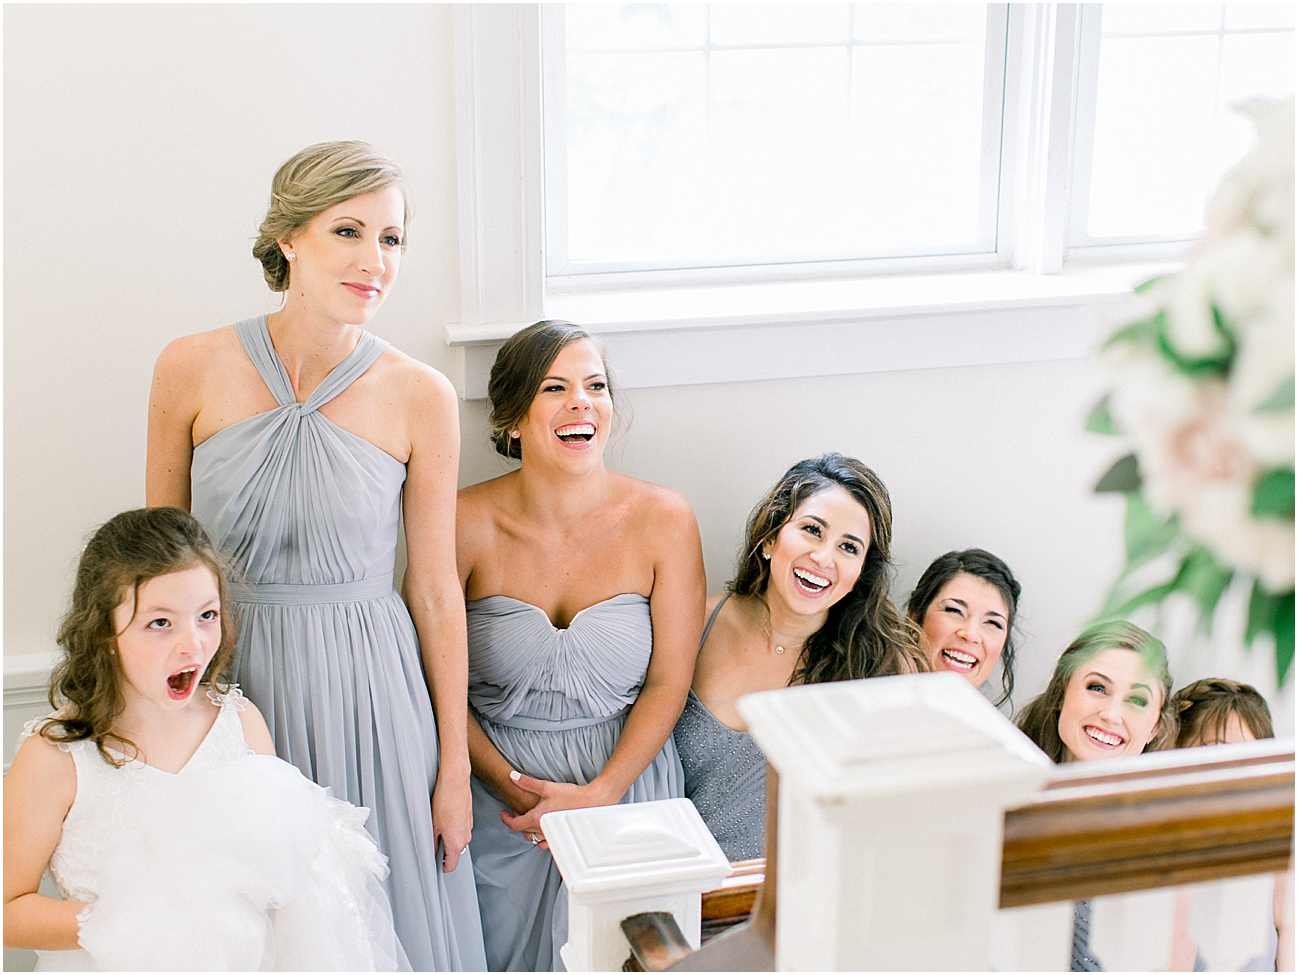 our_wedding_day_troy_NY_emma_willard_fairy_tale_royal_neutral_beauty_and_the_beast_moped_private_estate_cape_cod_boston_wedding_photographer_meredith_jane_photography_chris_kerr_photo_1957.jpg